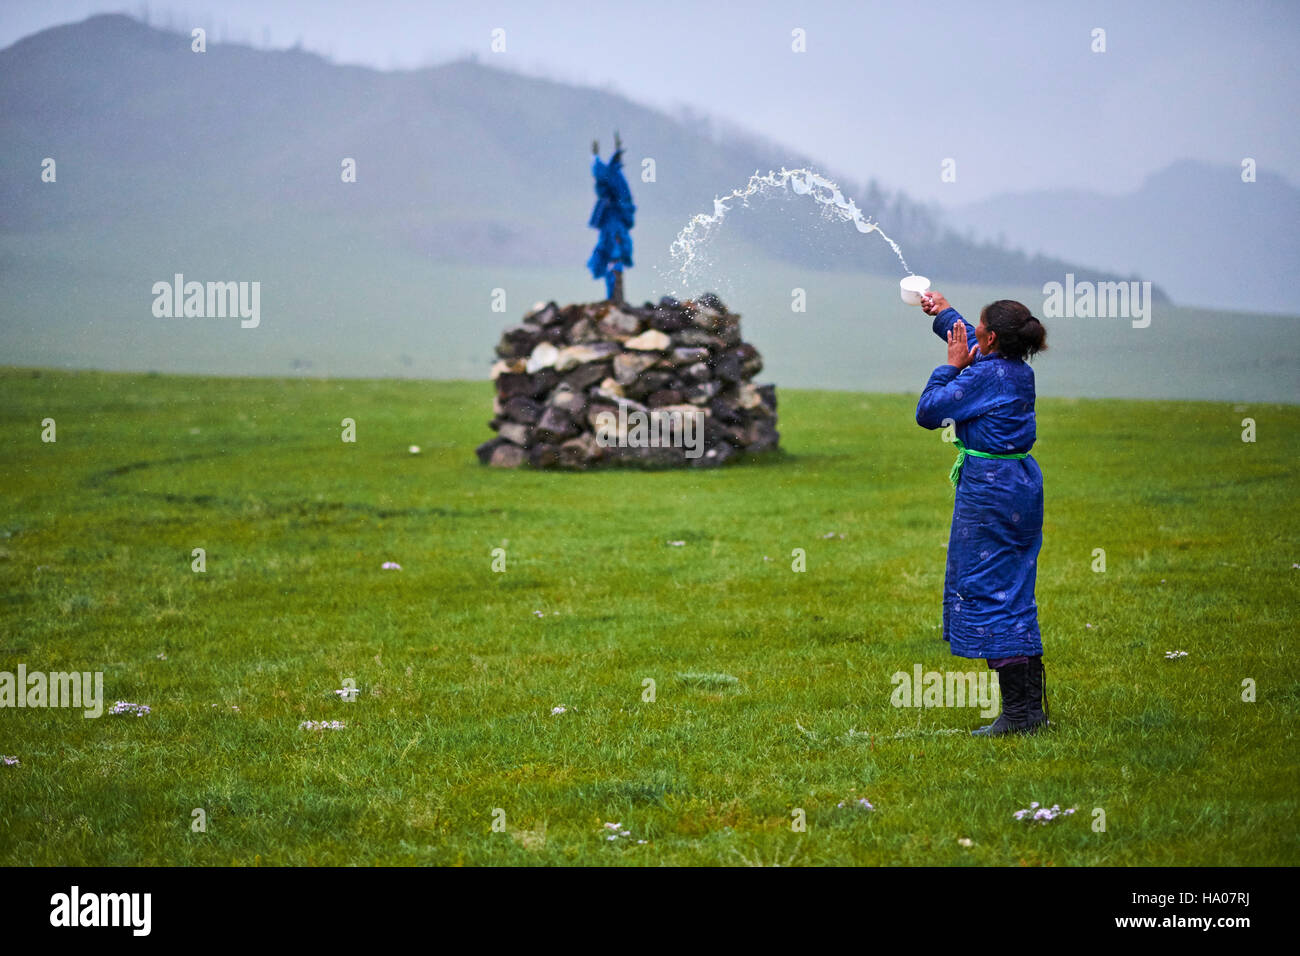 Mongolia, Ovorkhangai province, Orkhon valley, nomad woman making an offering to Tengri, the spirit of the sky - Stock Image